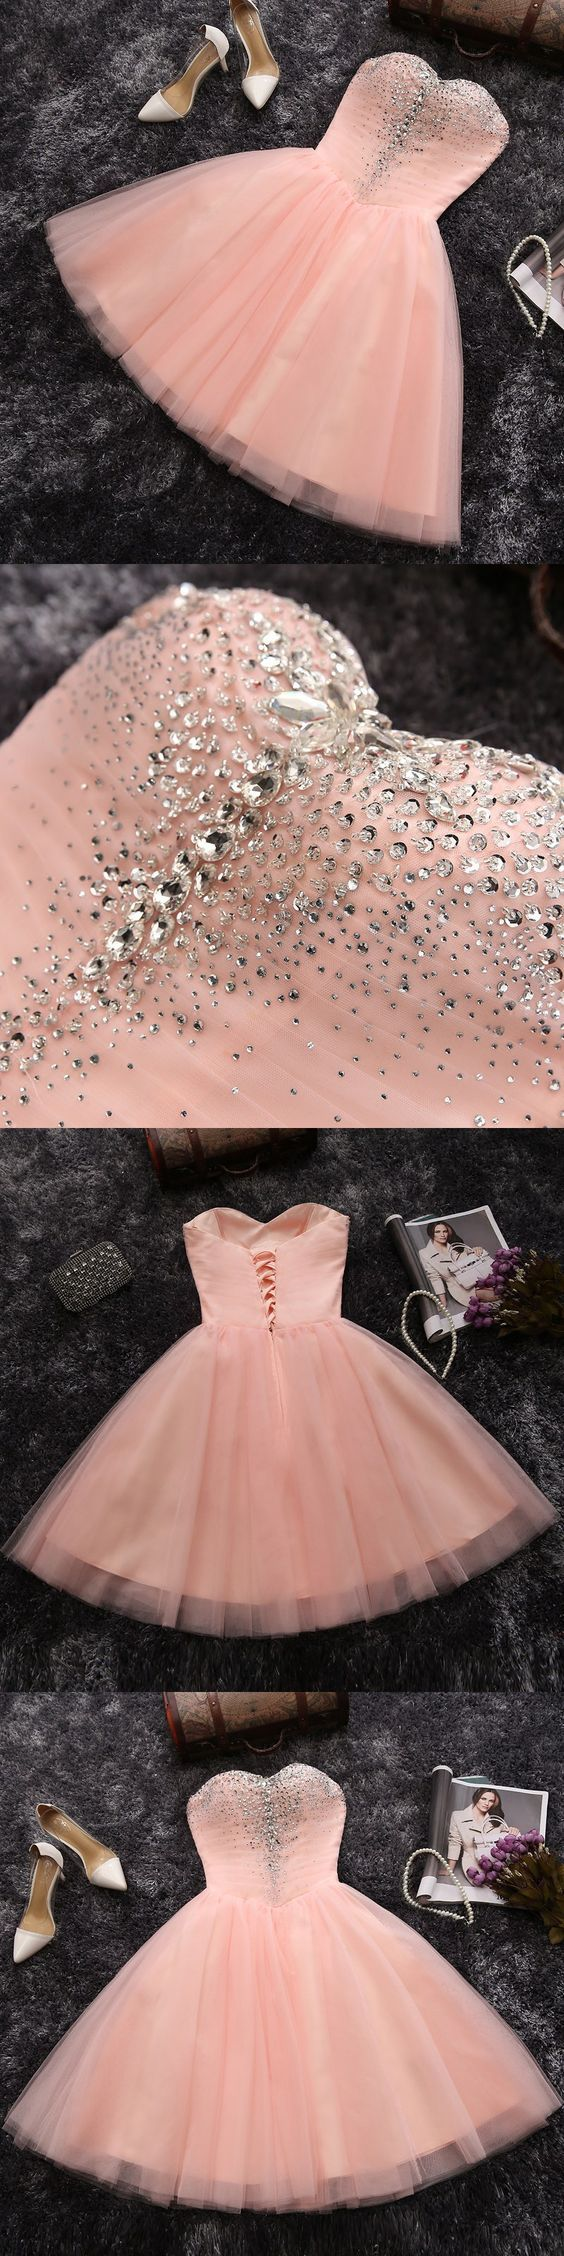 Charming Prom Dress,Tulle Pink Prom Dress,Short Prom Dresses,Cute Party Dress F2614